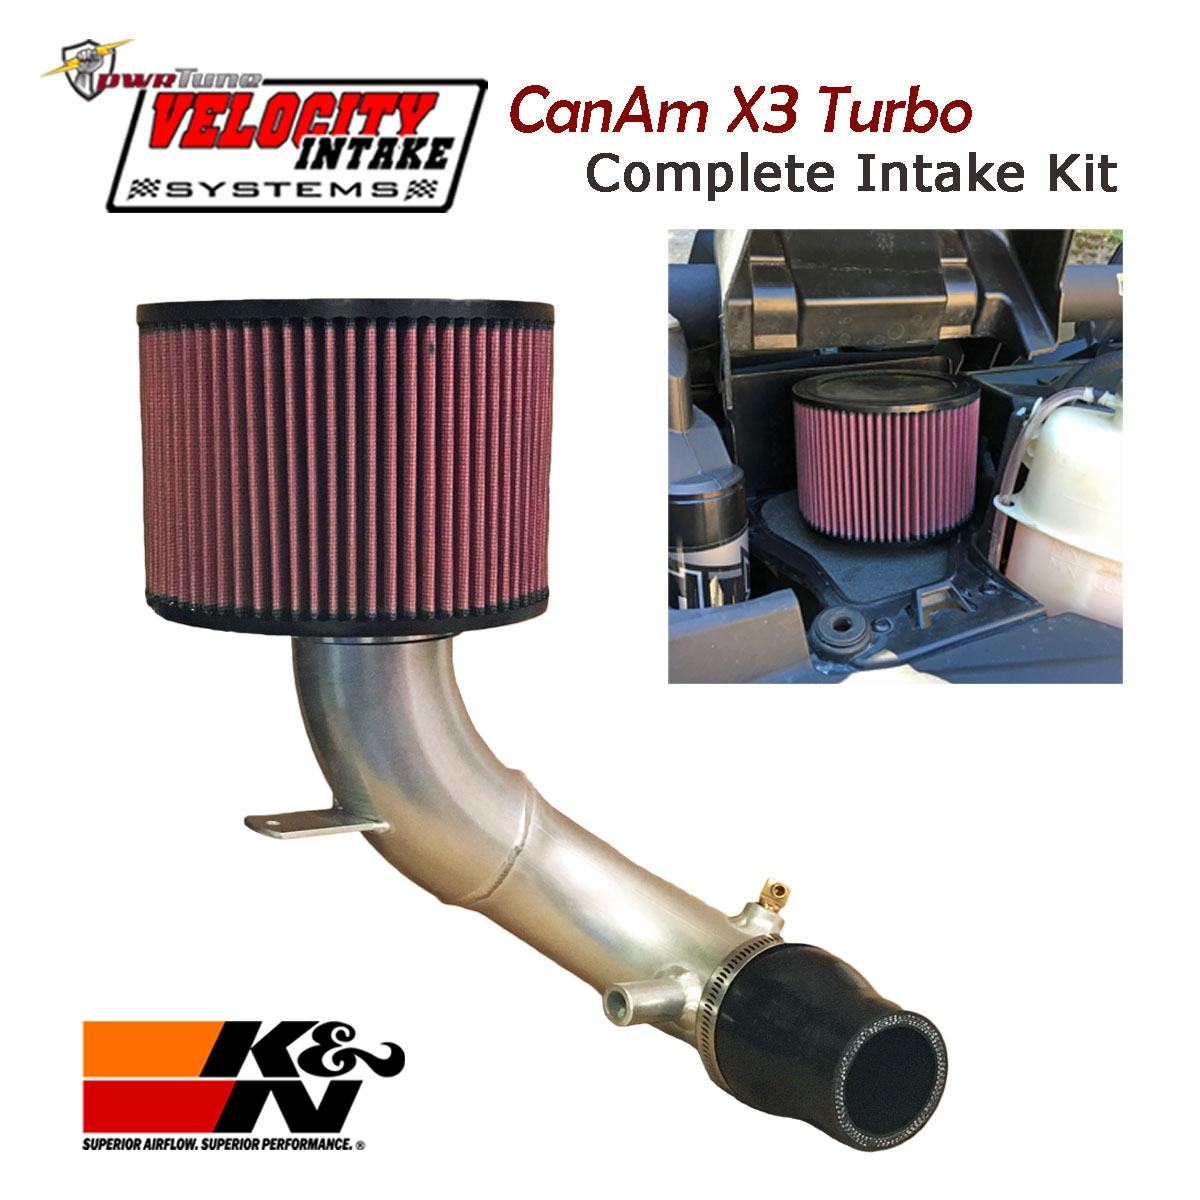 CanAm X3 Turbo Velocity Intake System K&N